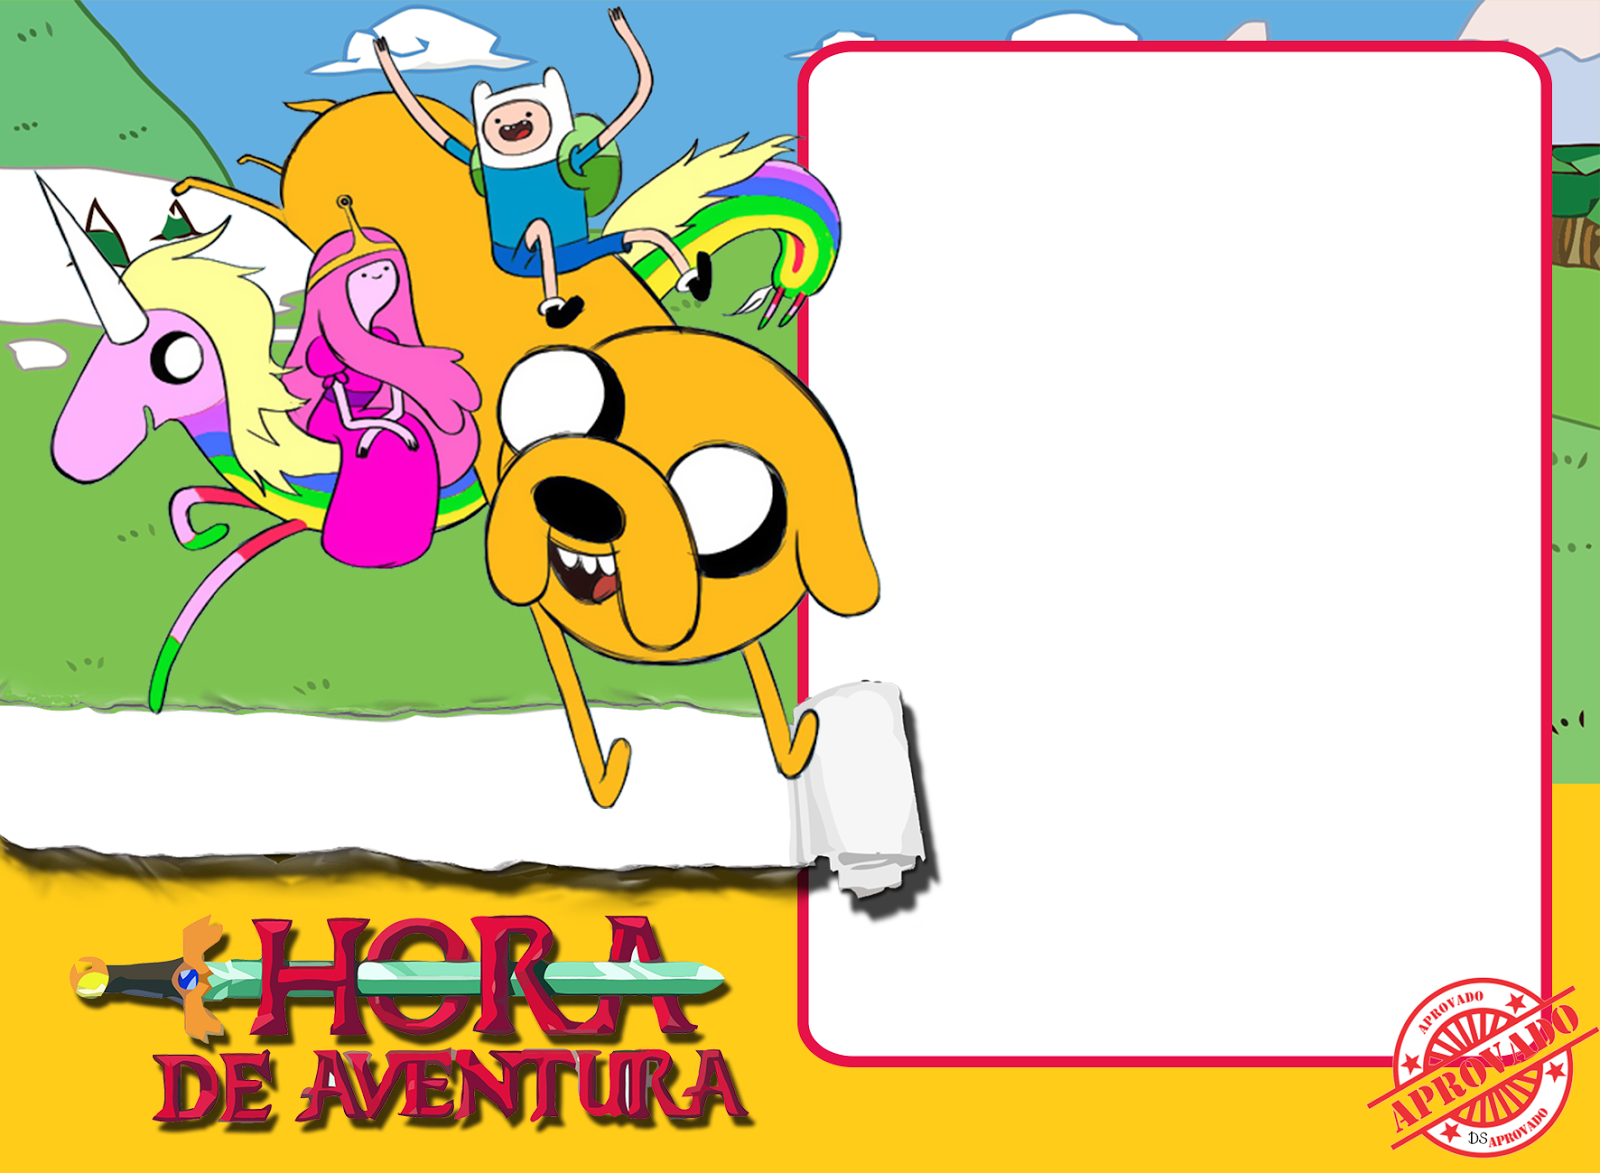 Adventure Time Free Printable Party Kit Oh My Fiesta in english